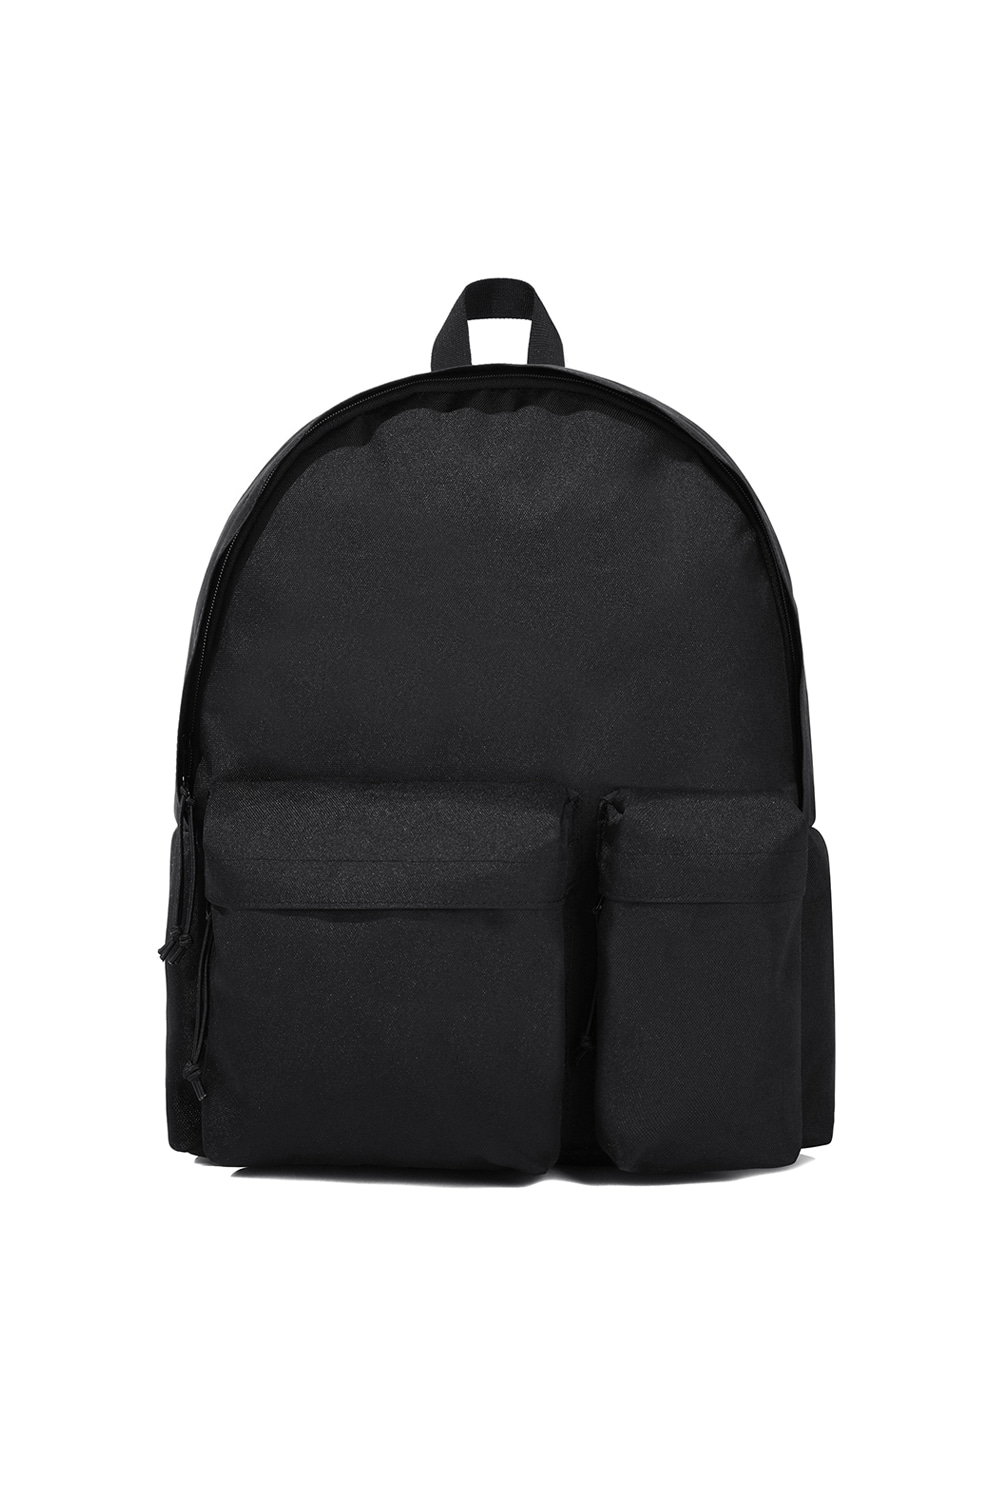 Back Pack Men [Black]